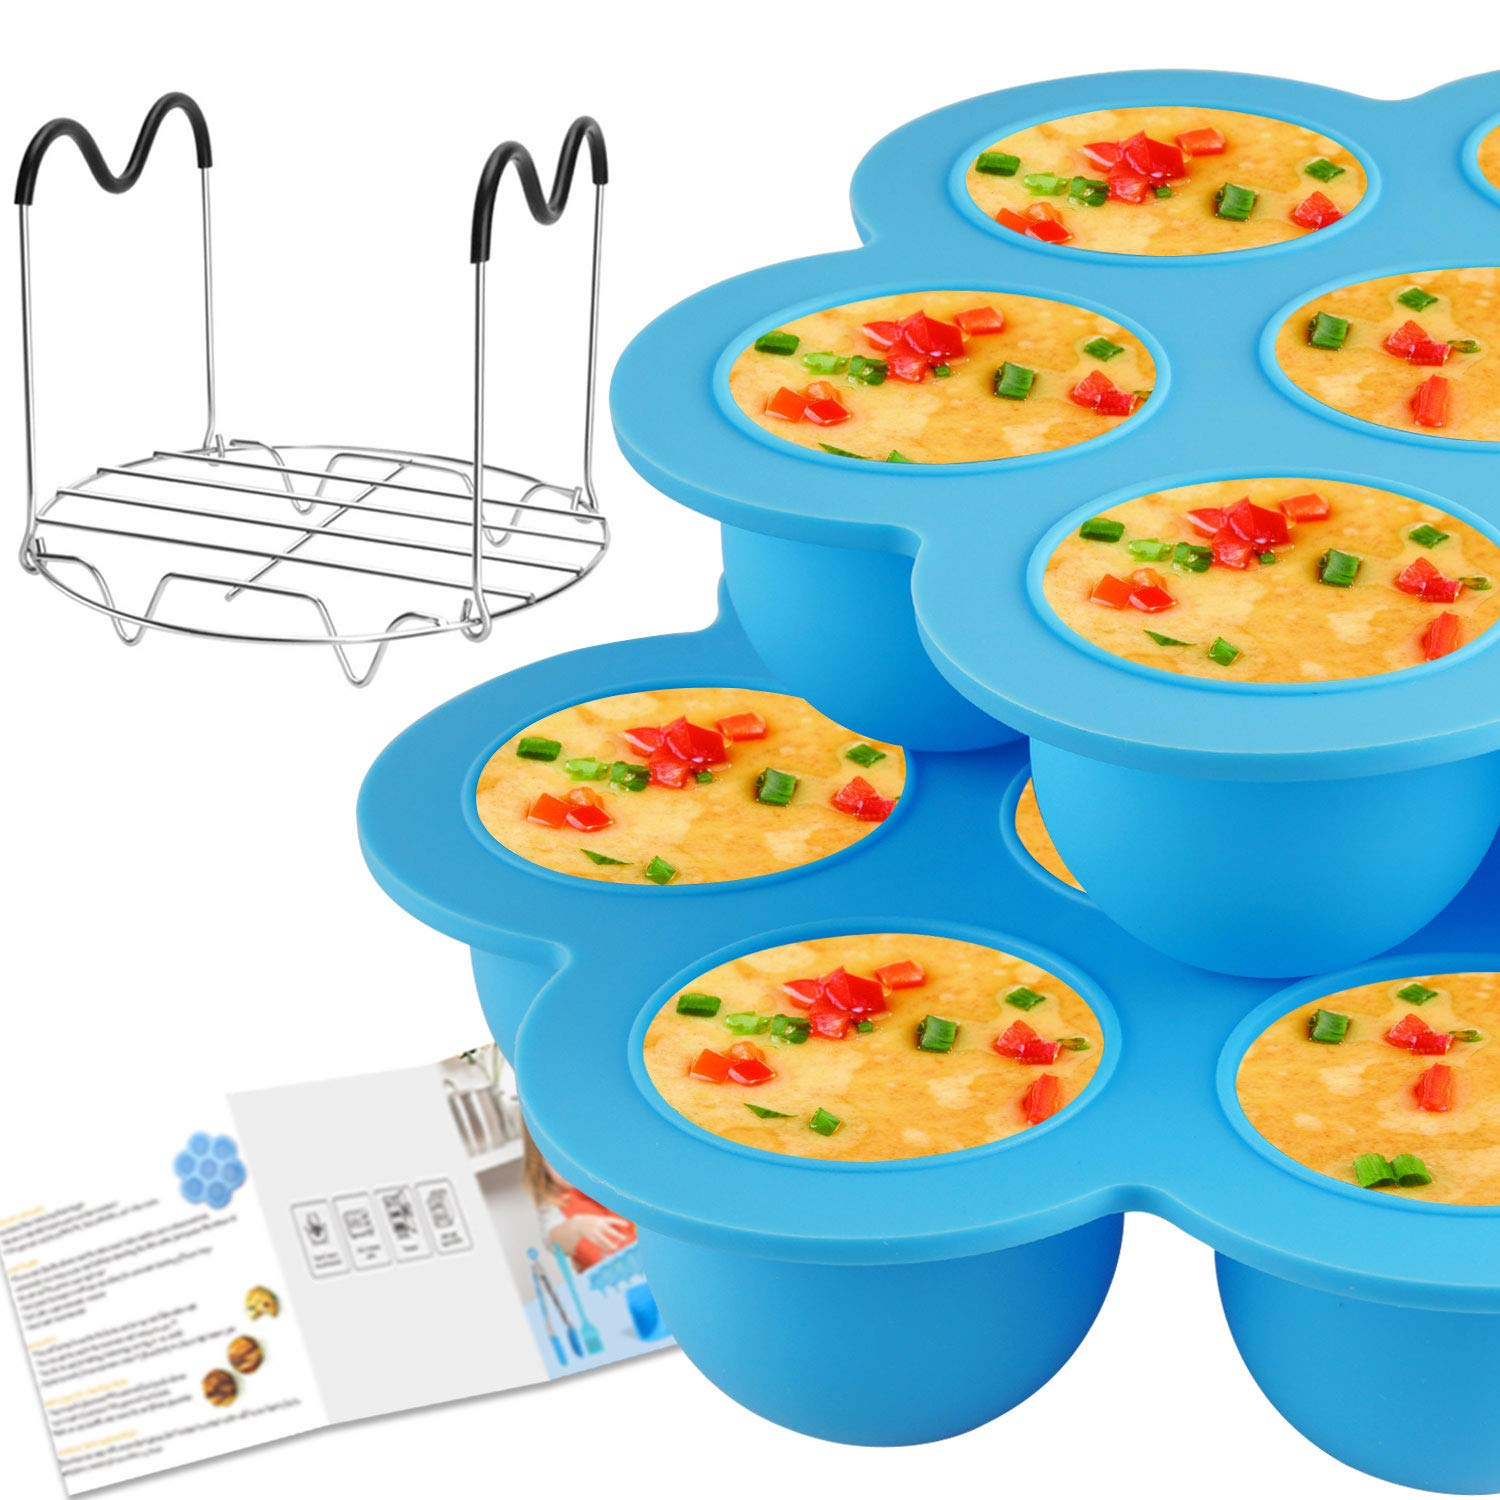 Voloop Silicone Egg Bites Molds and Steamer Rack Trivet with Silicone Handles for Instant Pot Accessories 6Qt or 8Qt Pressure Cooker, Freezer Accessory(3Pcs/Set)